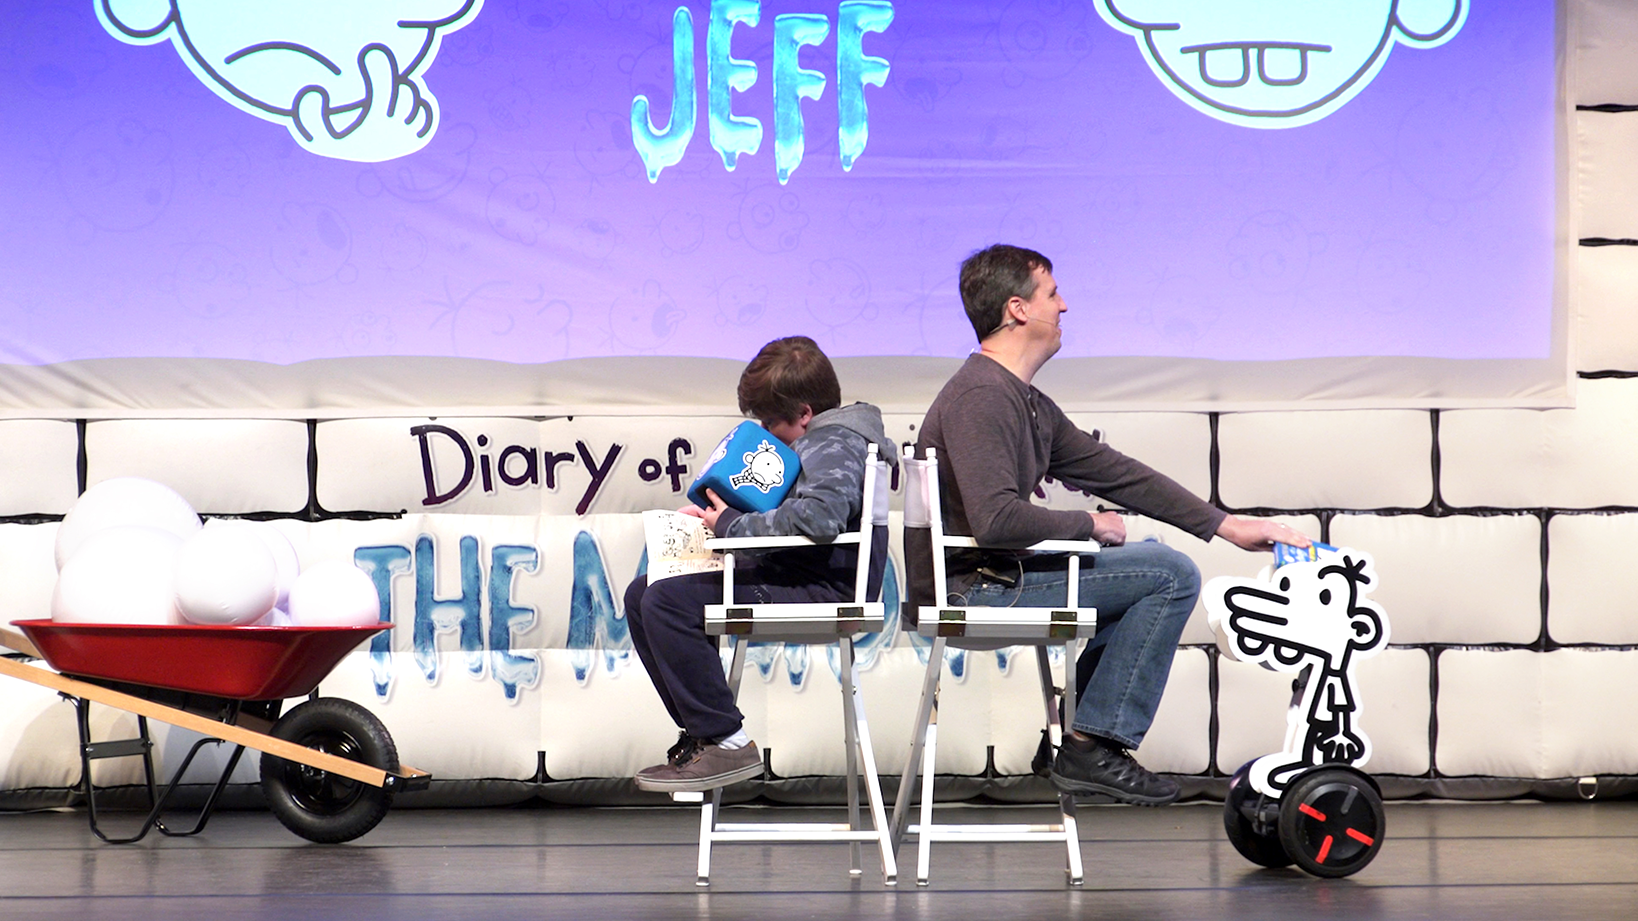 Children on stage at Diary of a Wimpy Kid